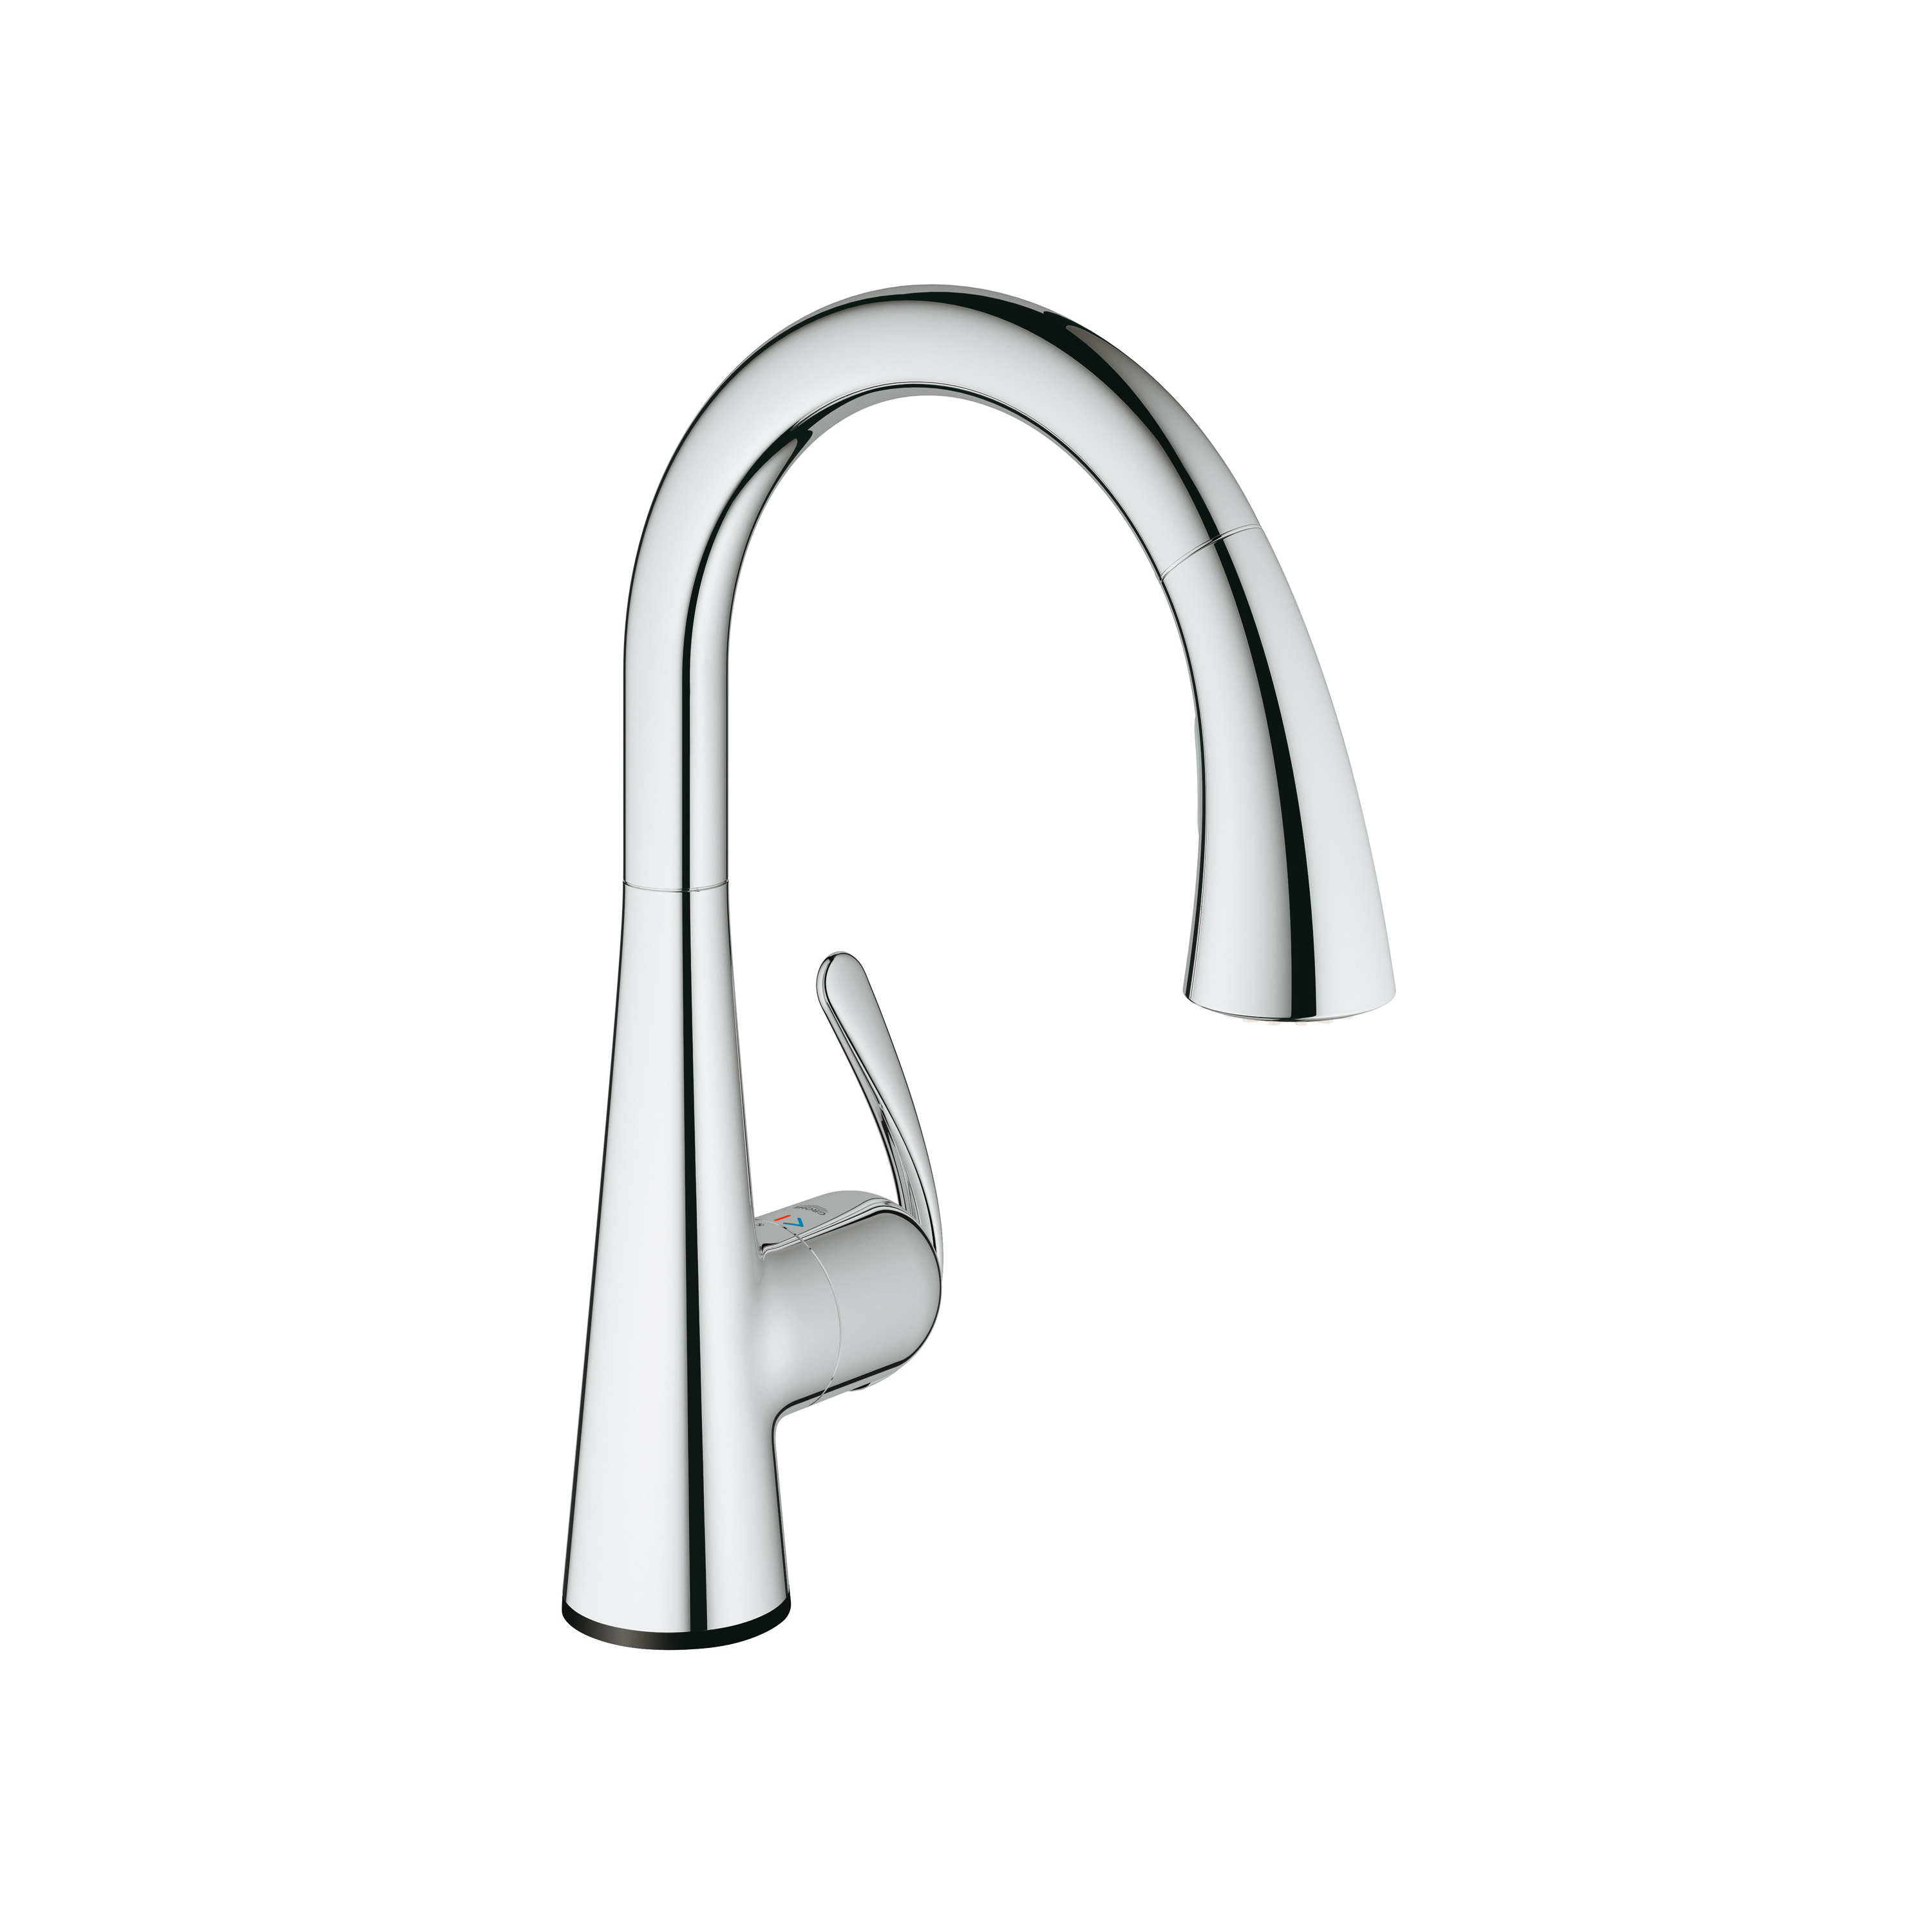 GROHE 30205001 Ladylux™ Kitchen Faucet With Dual Spray, 1.75 gpm, 1 Faucet Hole, StarLight® Chrome, 1 Handle, Import, Residential